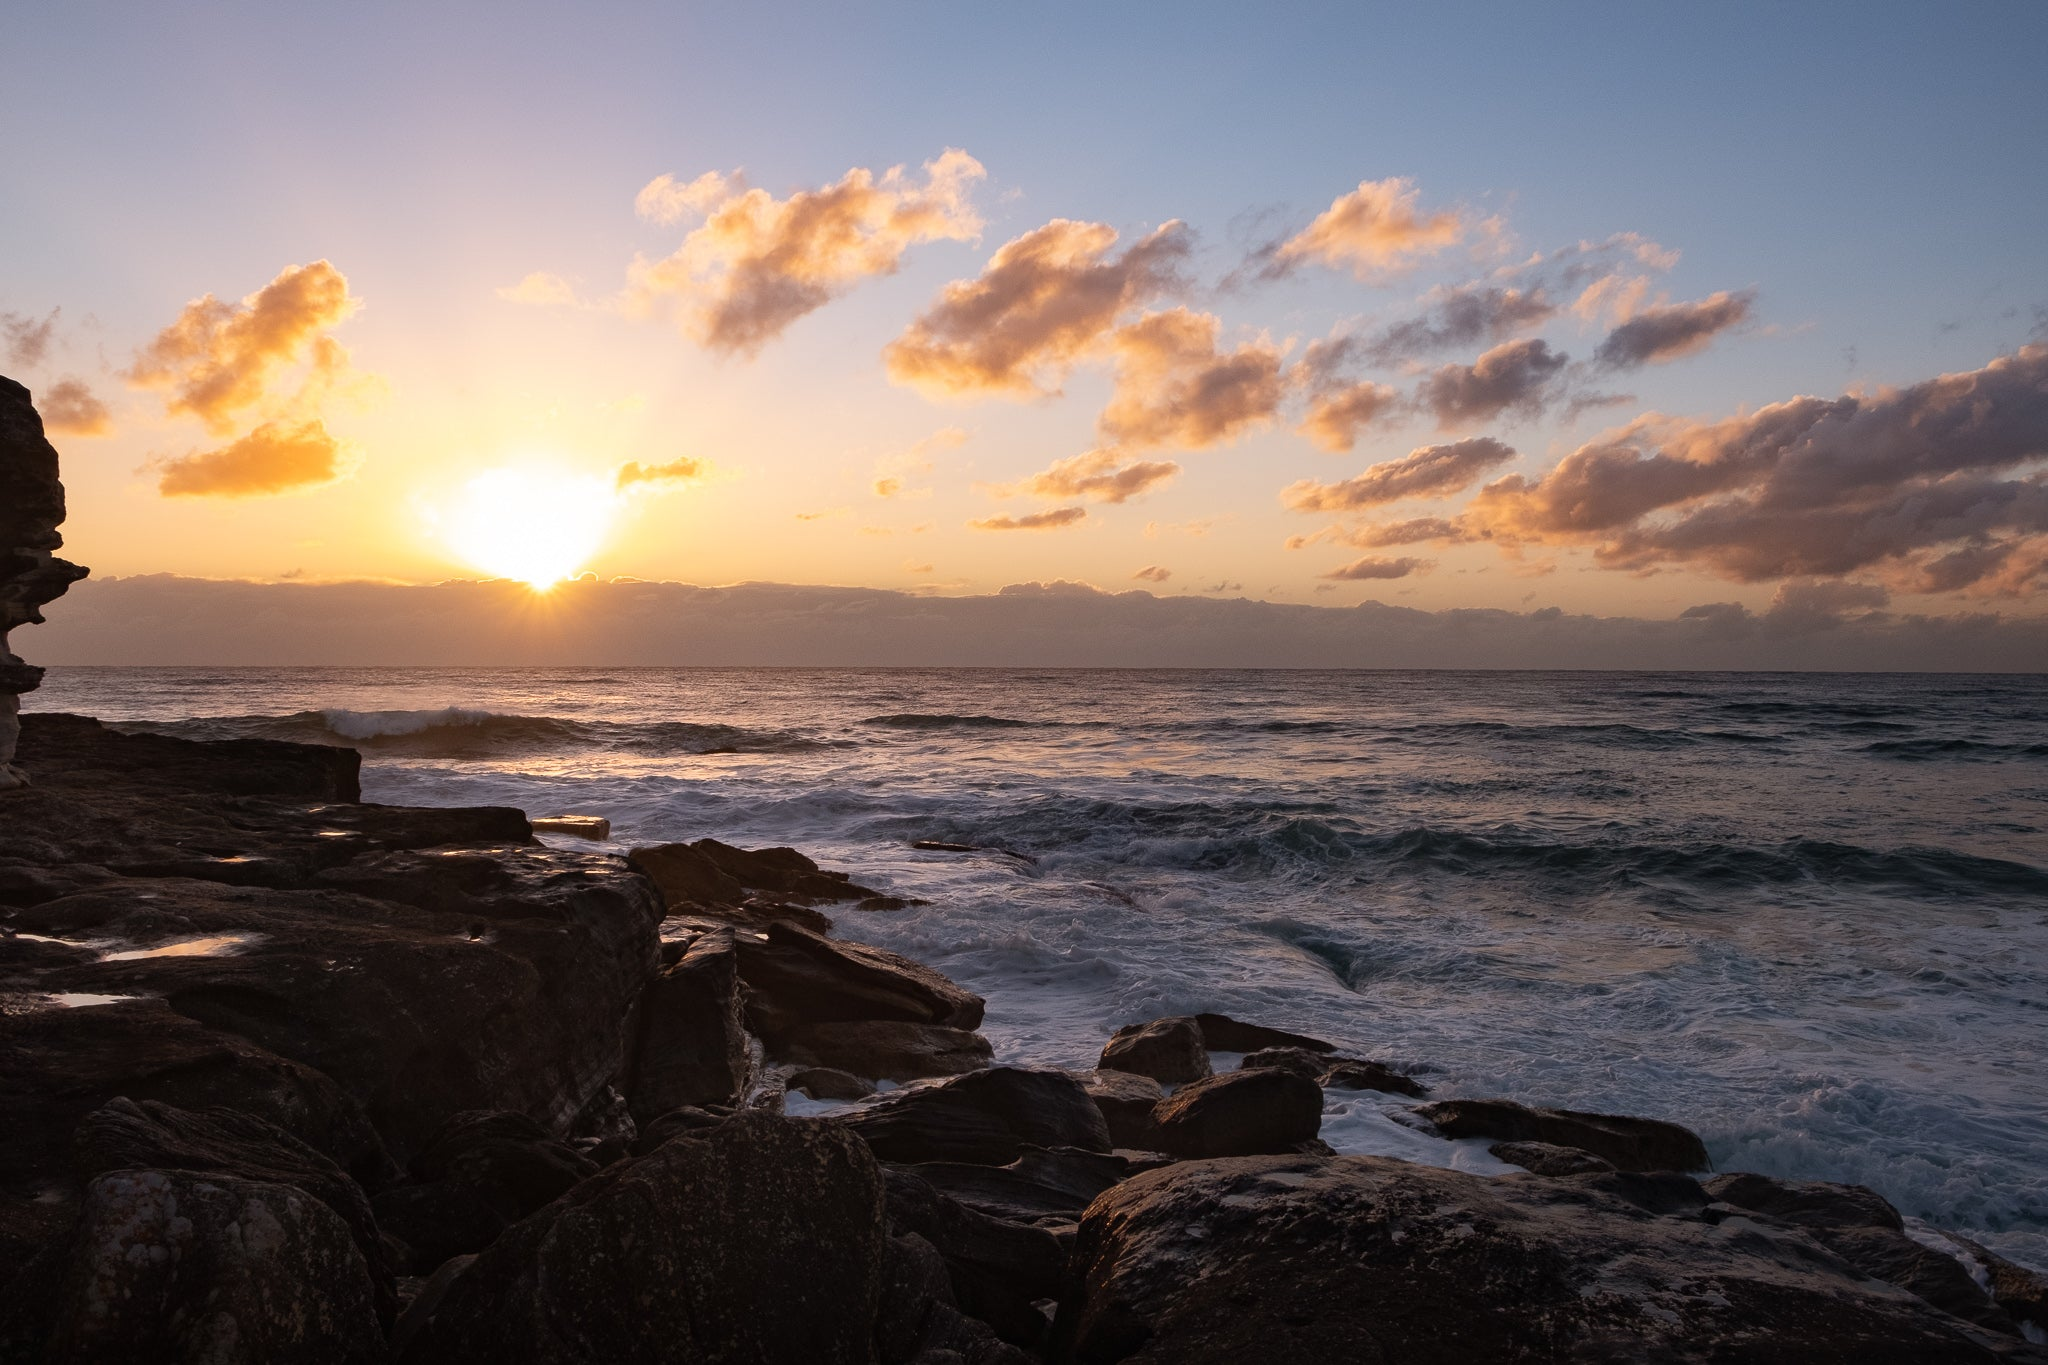 Sunrise photo from the 10th October 2019 at Queenscliff Headland in Sydney